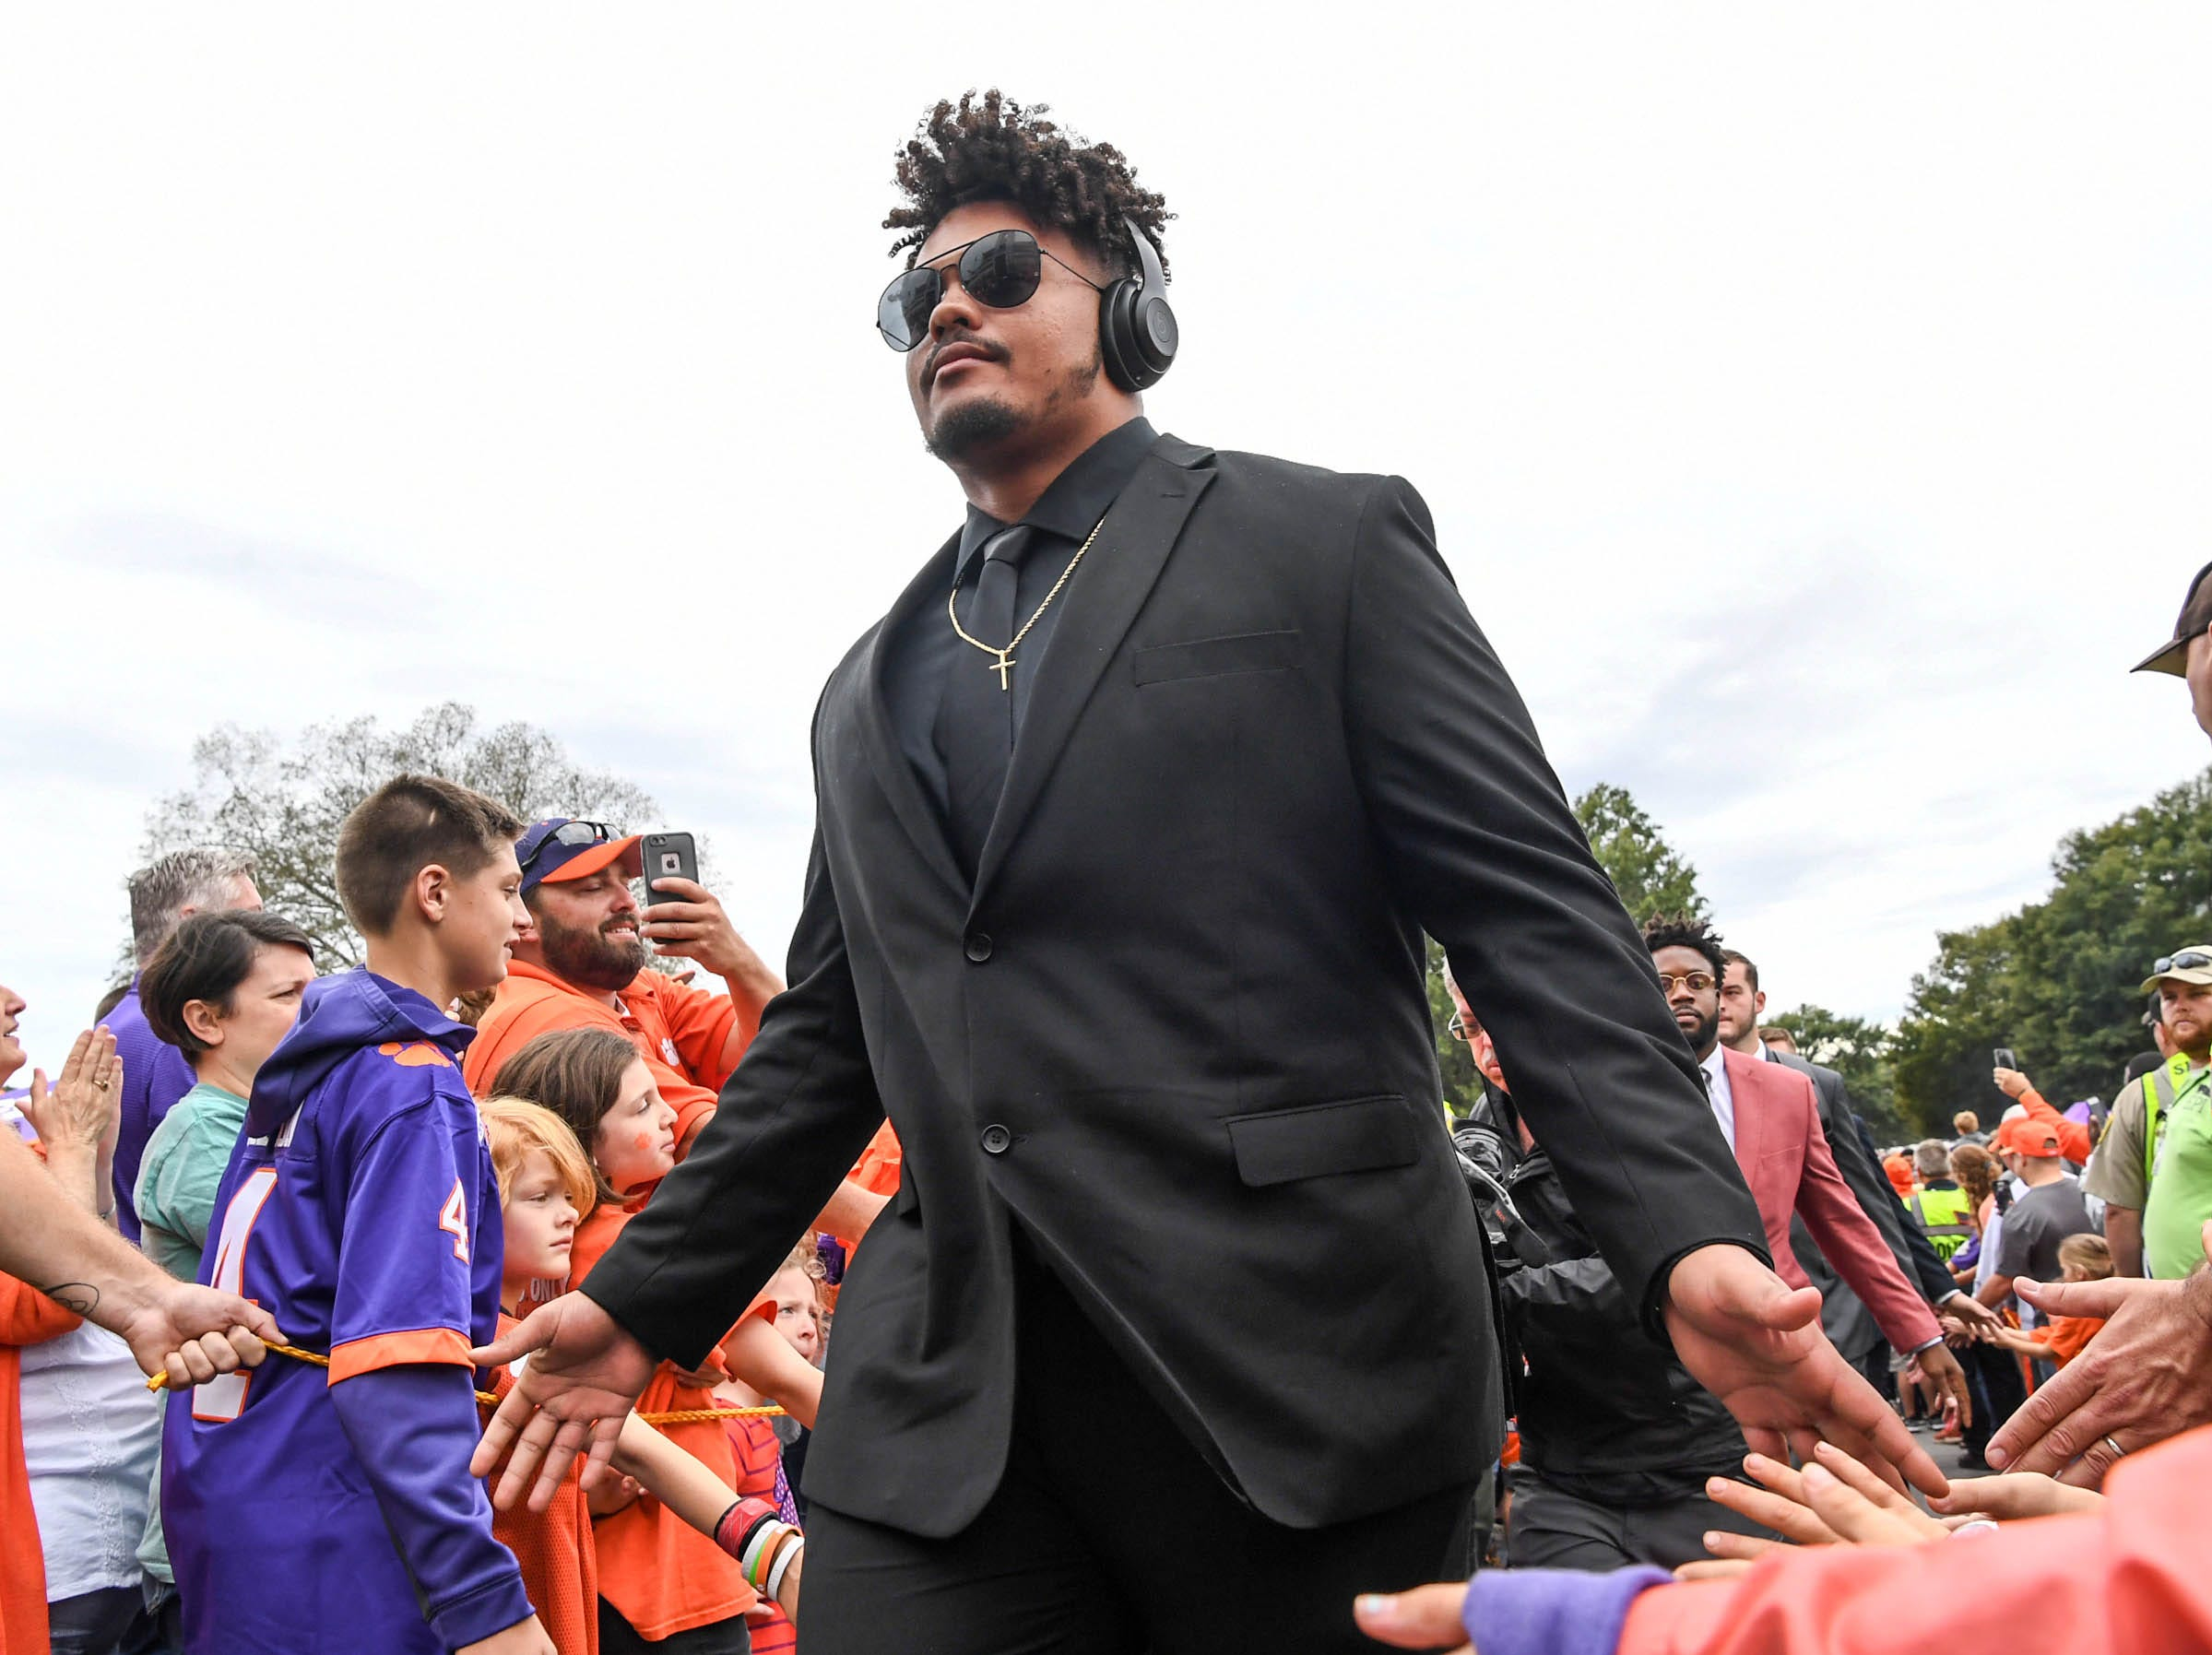 Clemson offensive lineman Jackson Carman (79) walks by fans during Tiger Walk before the game in Memorial Stadium on Saturday, October 20, 2018.